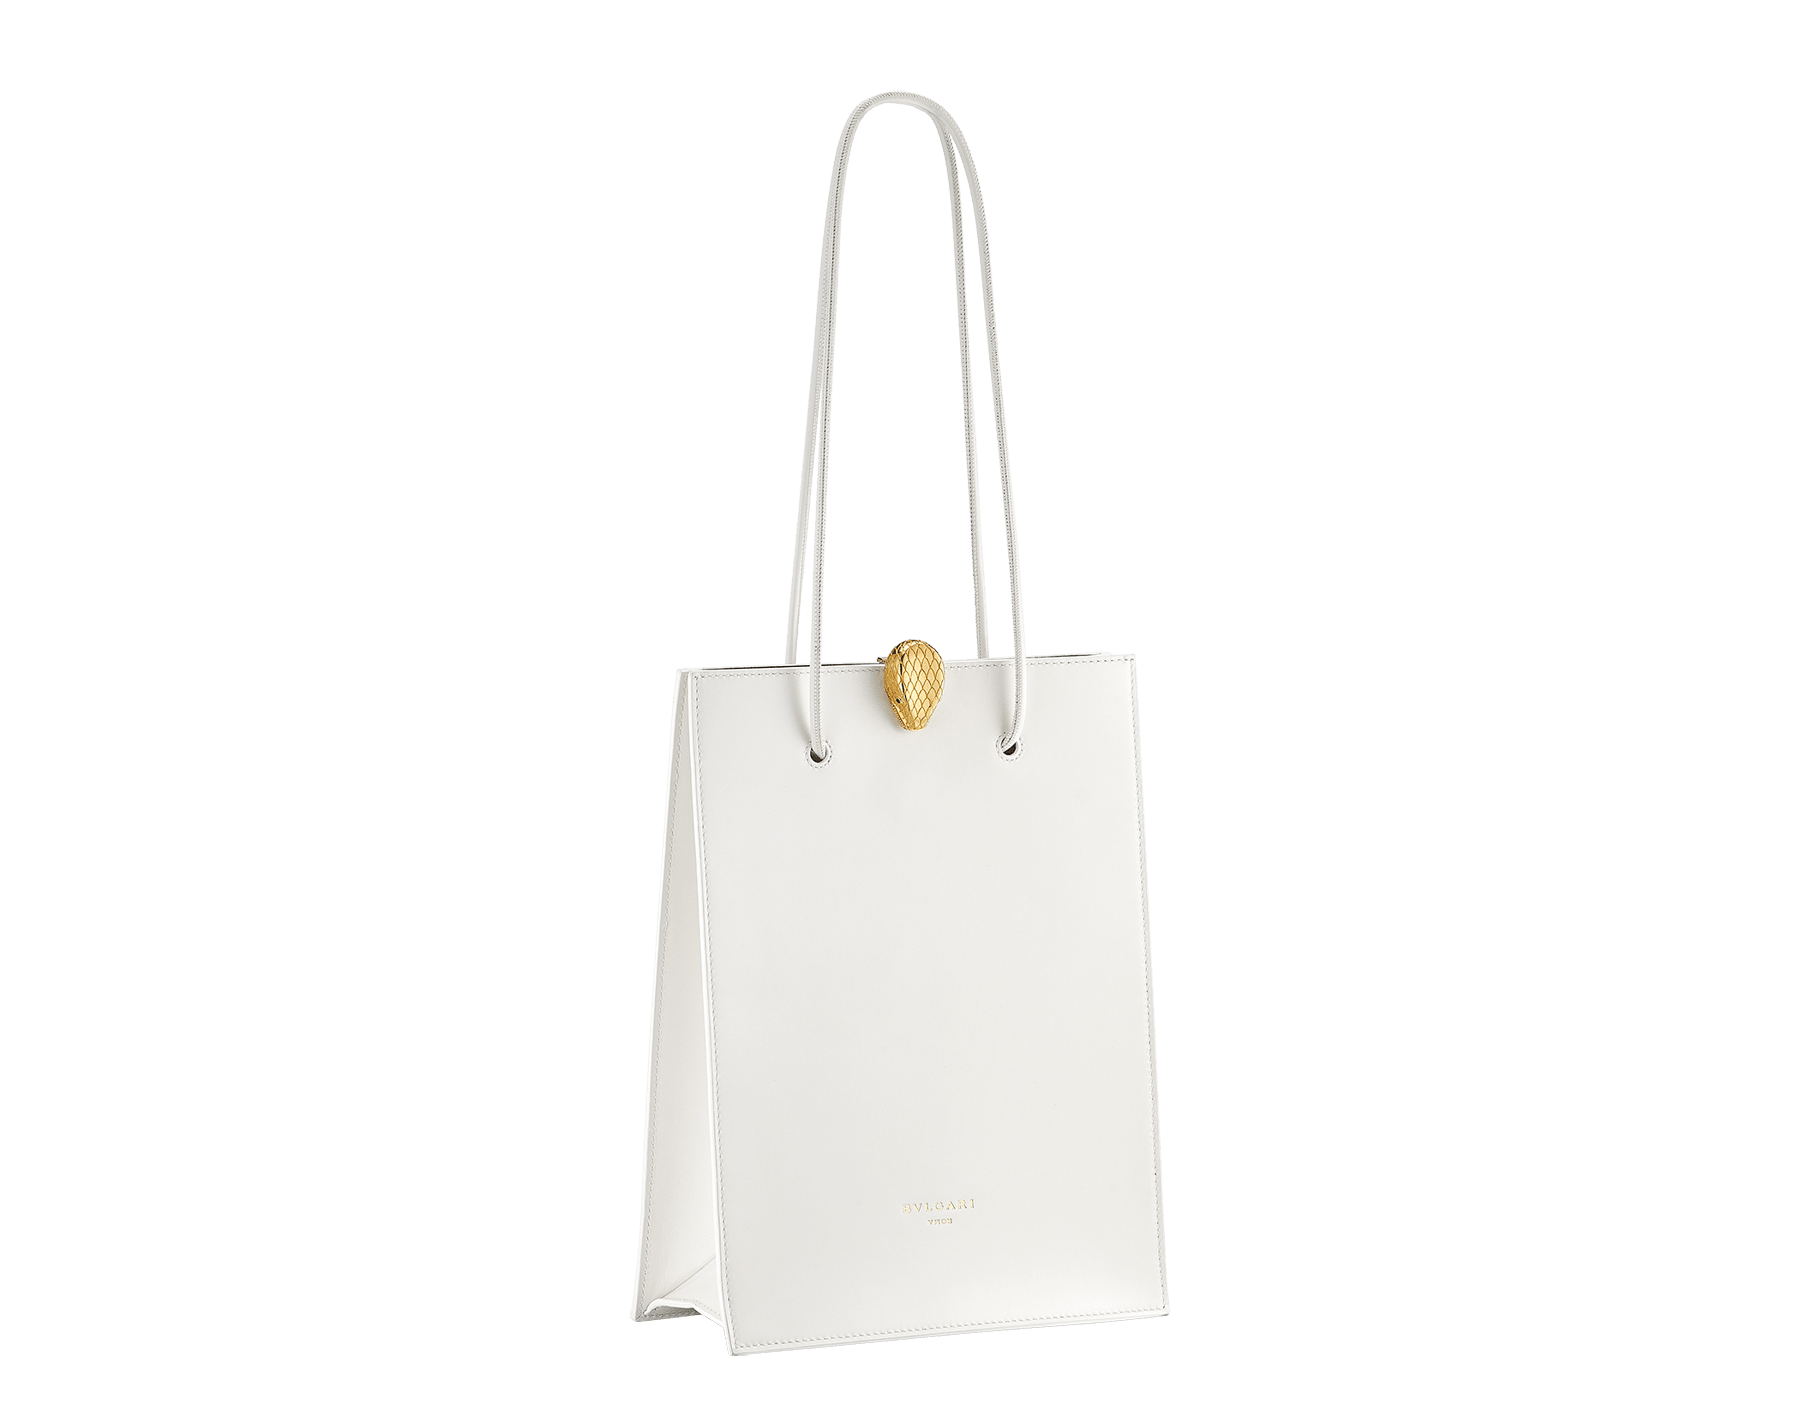 Alexander Wang x Bvlgari shopping tote bag in smooth white calf leather. New Serpenti head closure in antique gold plated brass with tempting red enamel eyes. Limited edition. 288730 image 2